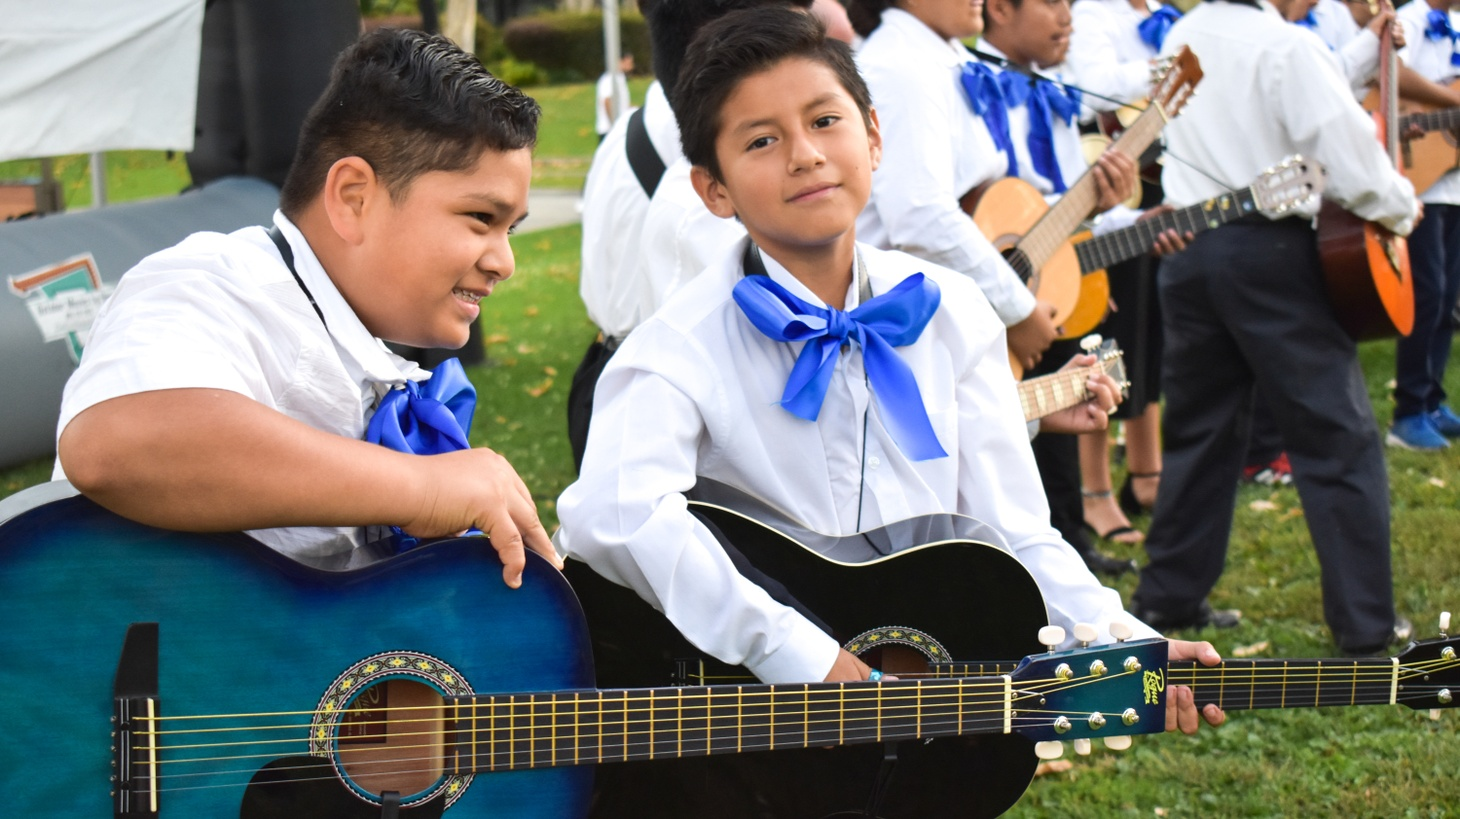 Two young guitar players in SMYO's mariachi ensemble.